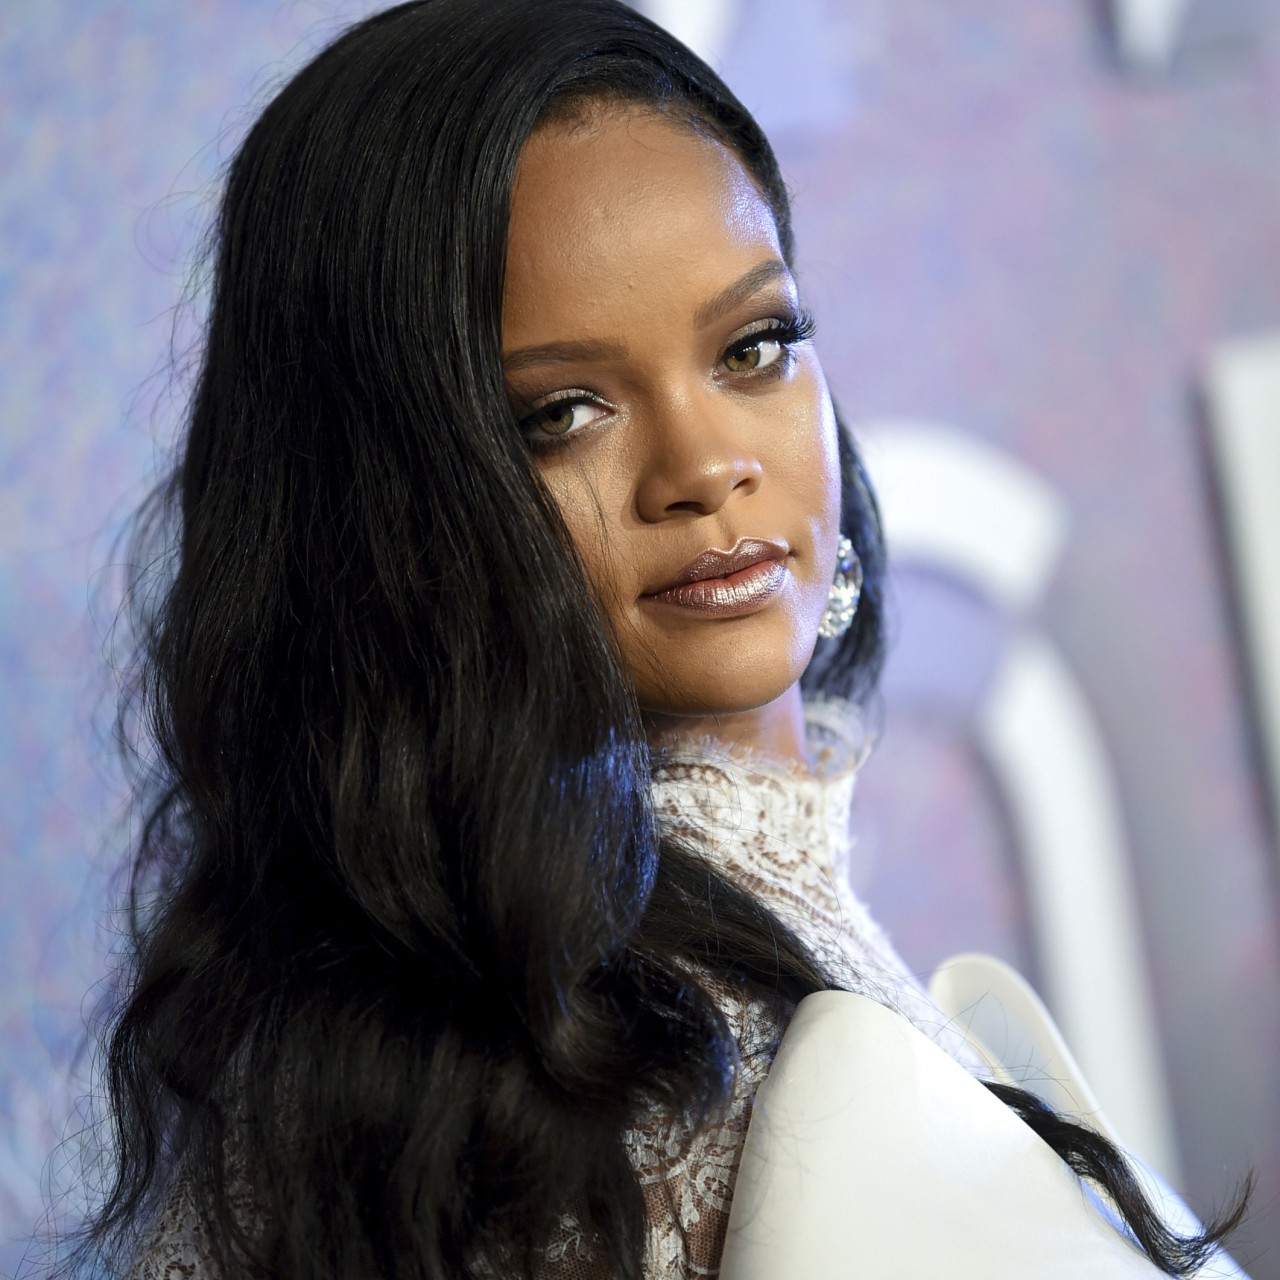 ae6b1ef31d1 Singer Rihanna to launch luxury fashion house with LVMH under her ...